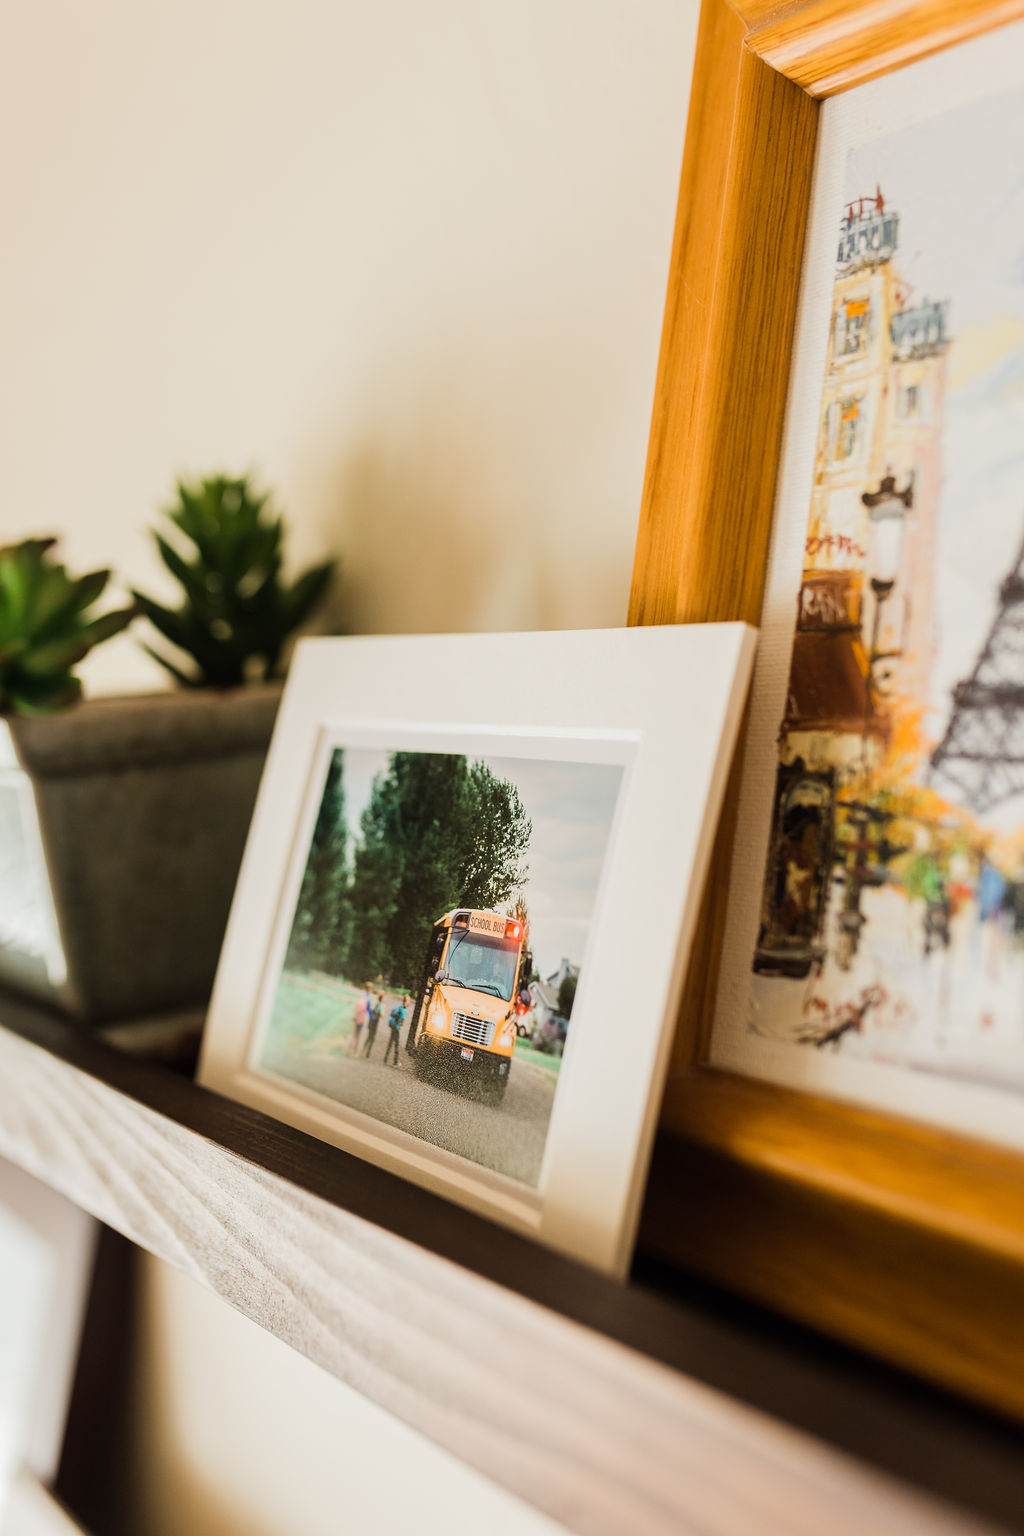 """""""I love my photos. You nail the contrast and colors. I can't wait to order more! I plan to fill three little boys' books with your prints. I will definitely be using your service for more prints in the future."""